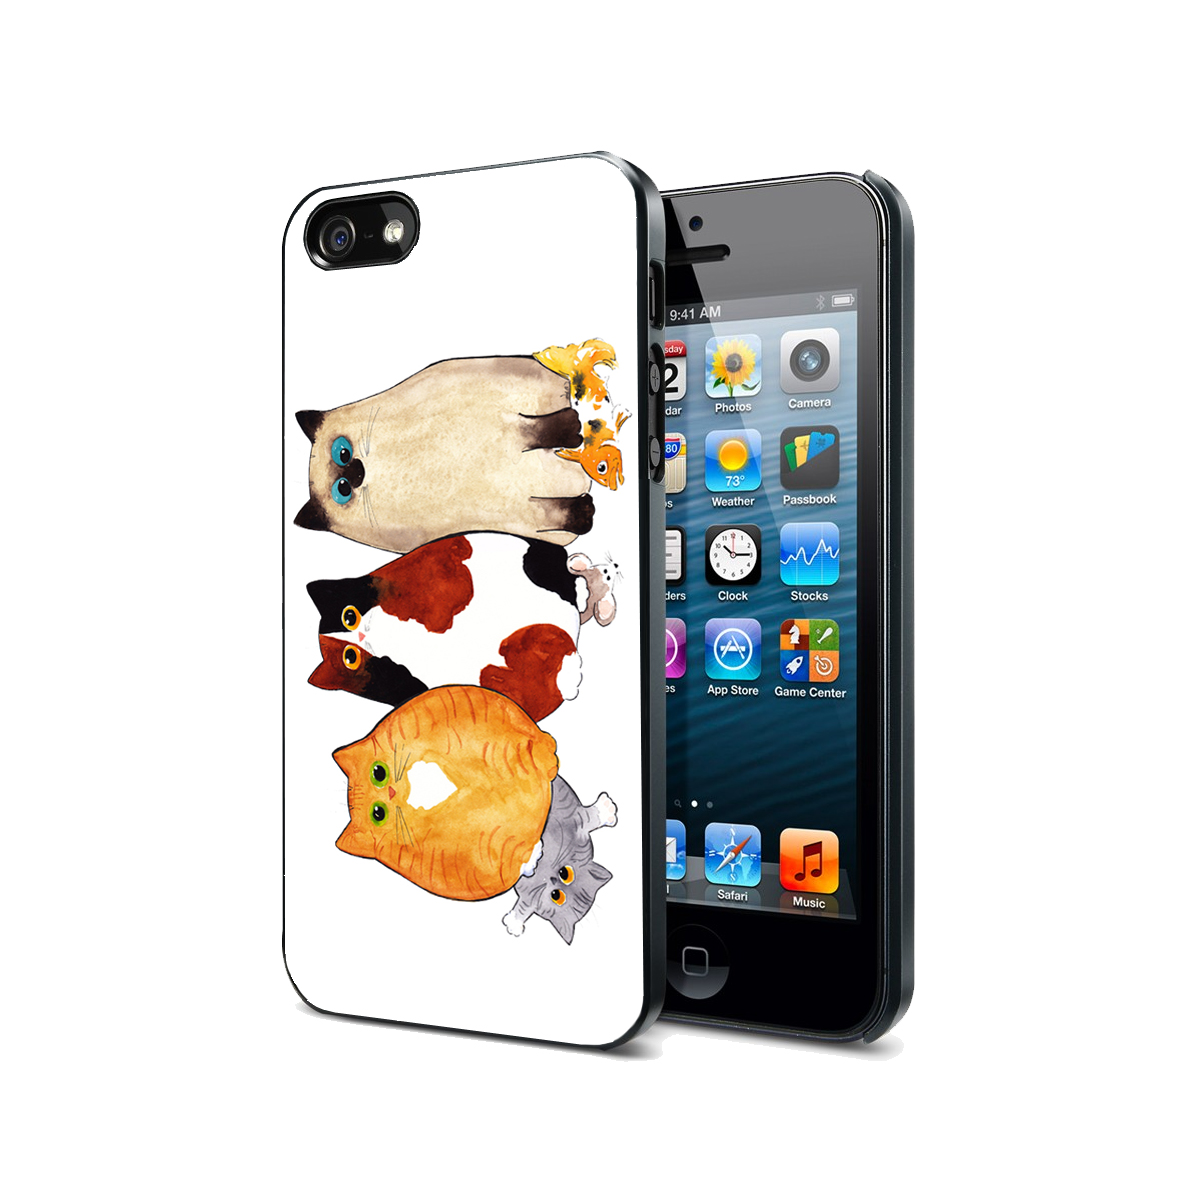 KuzmarK Black Cover Case fits iPhone SE & iPhone 5 - Kitties Behaving Badly Art by Denise Every